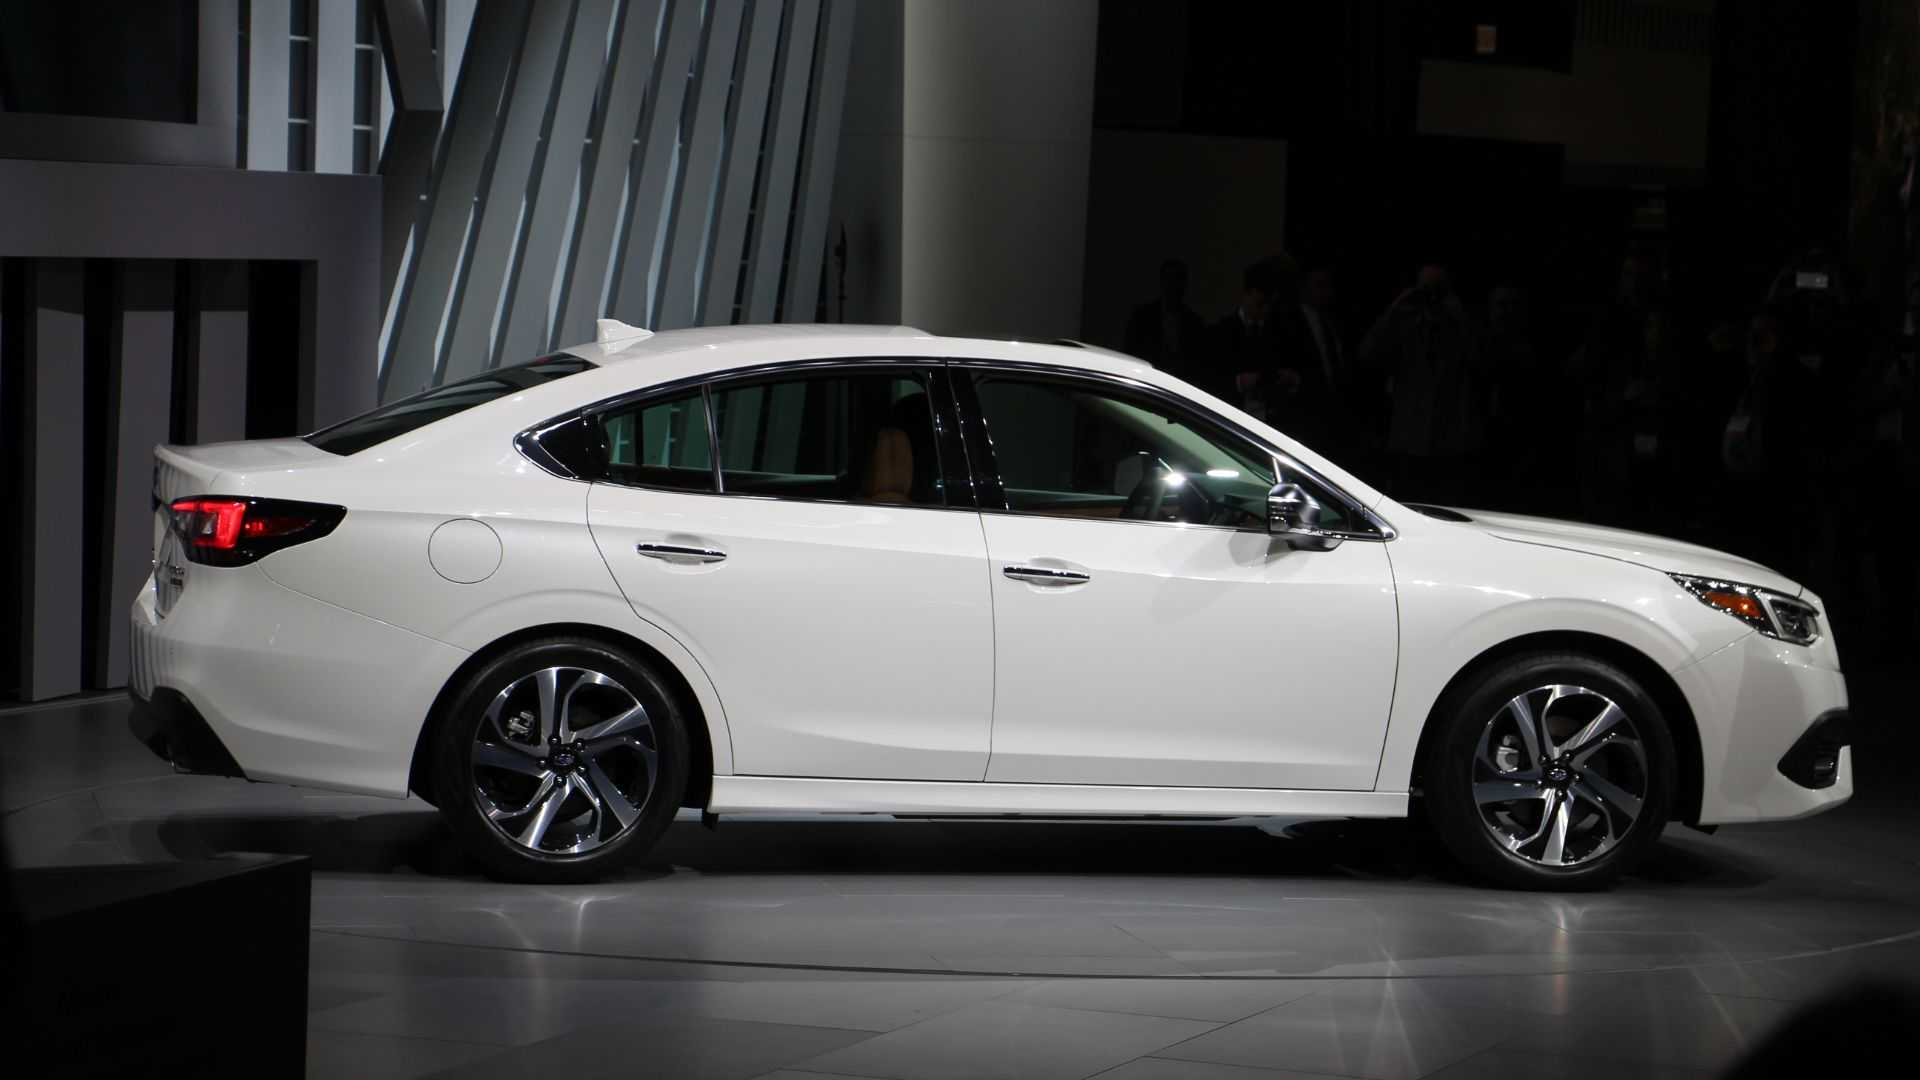 94 New 2020 Subaru Legacy Release Date and Concept